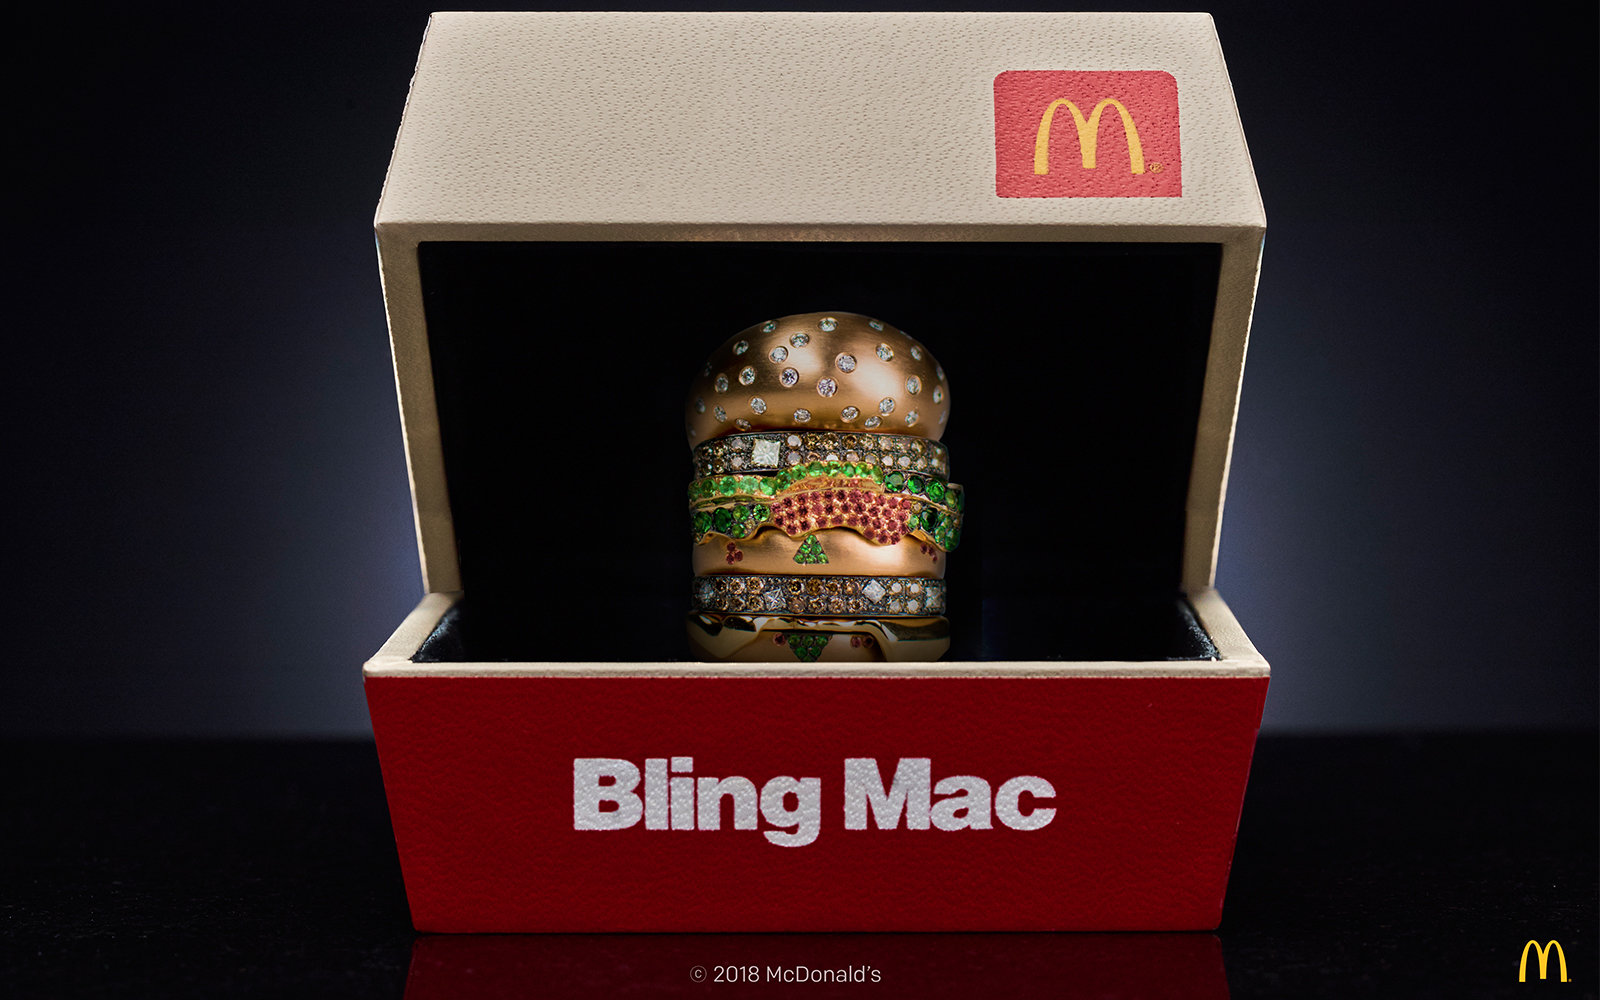 McDonald's Bling Mac Ring Contest